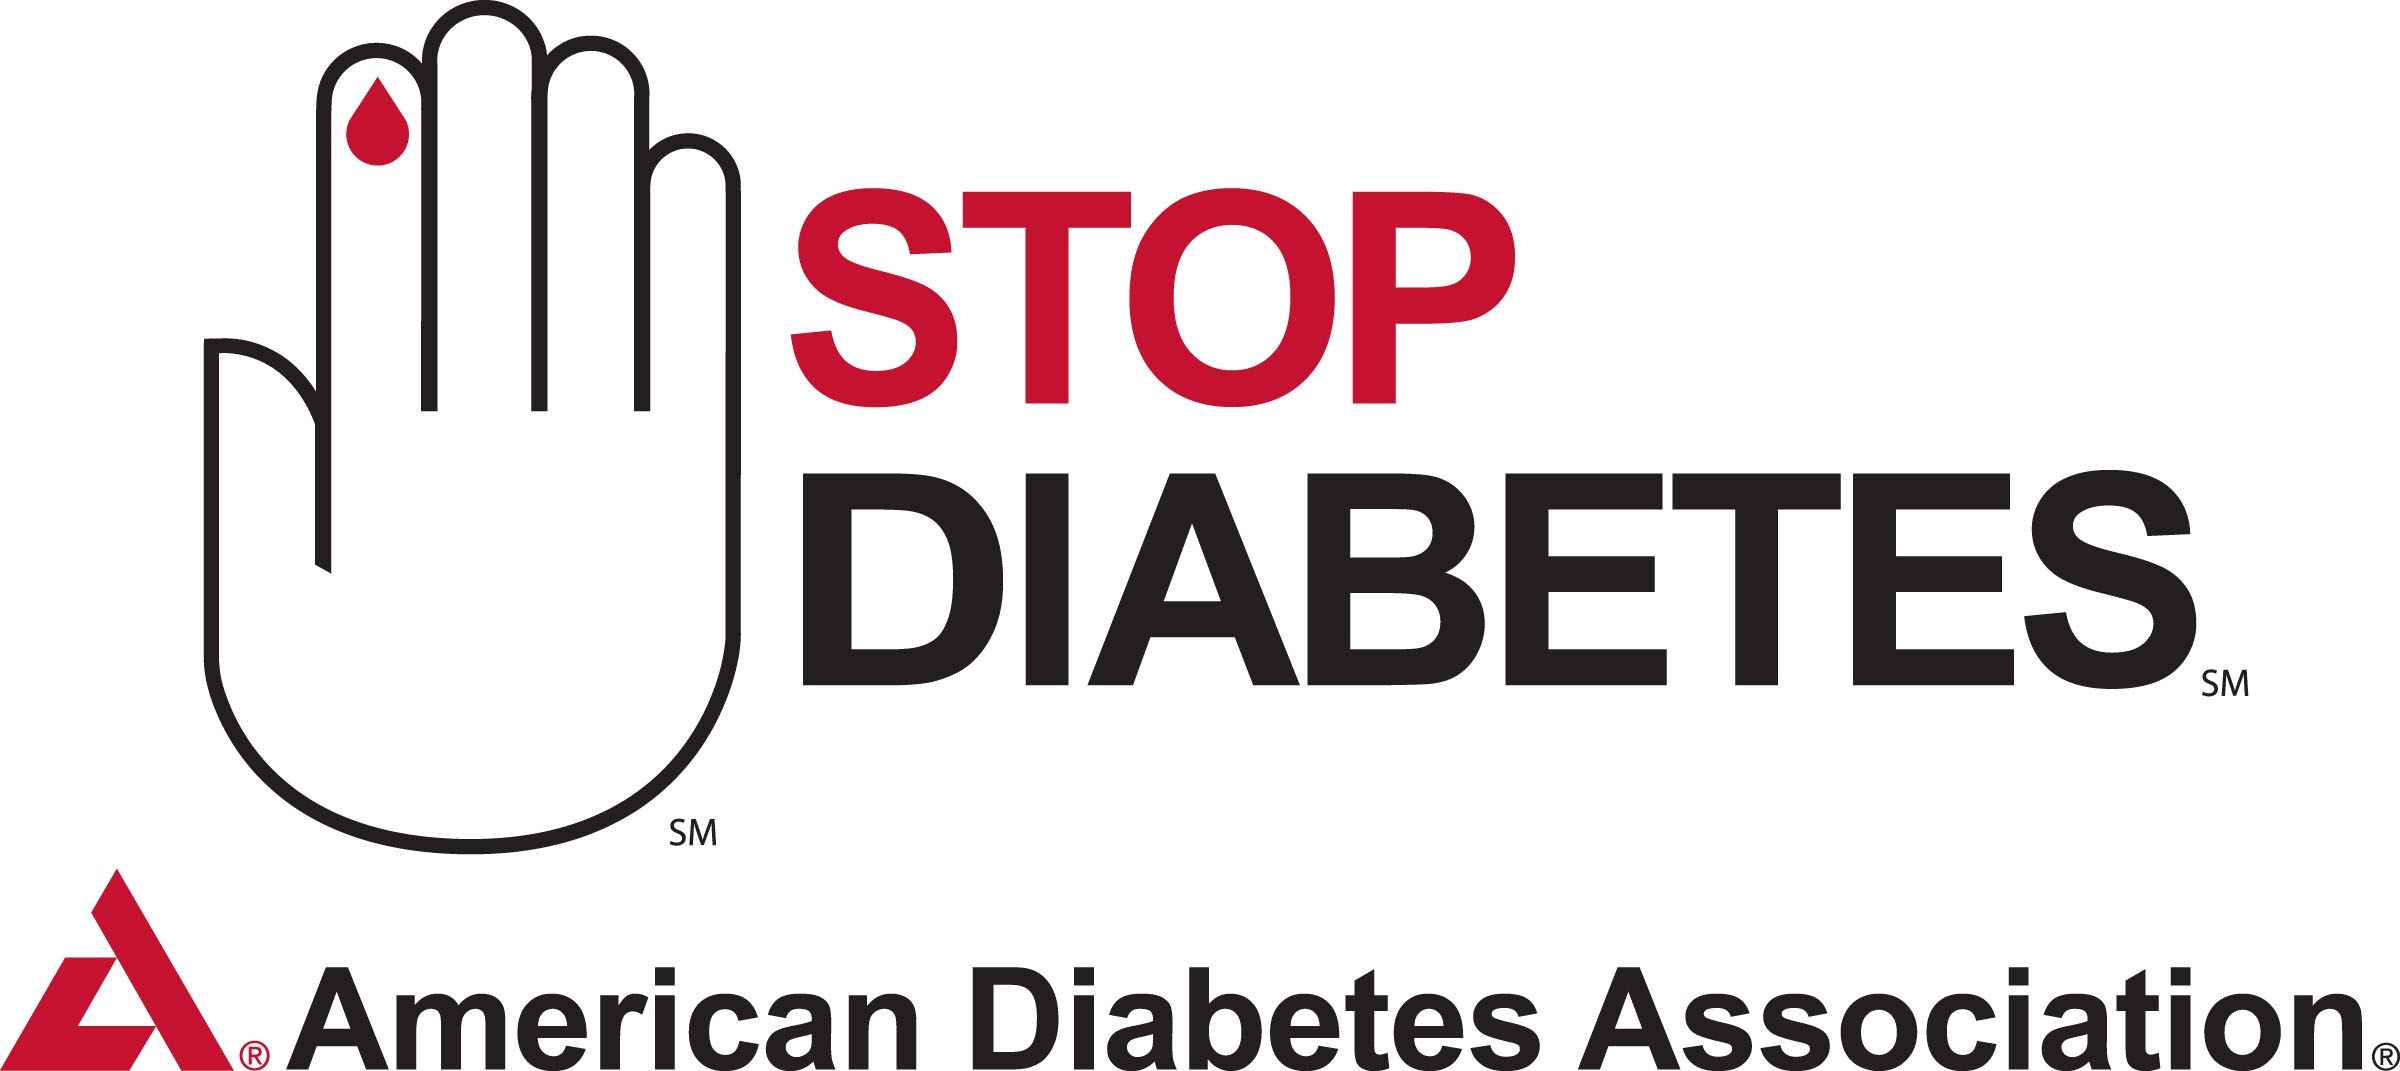 Image Source: diabetes.org